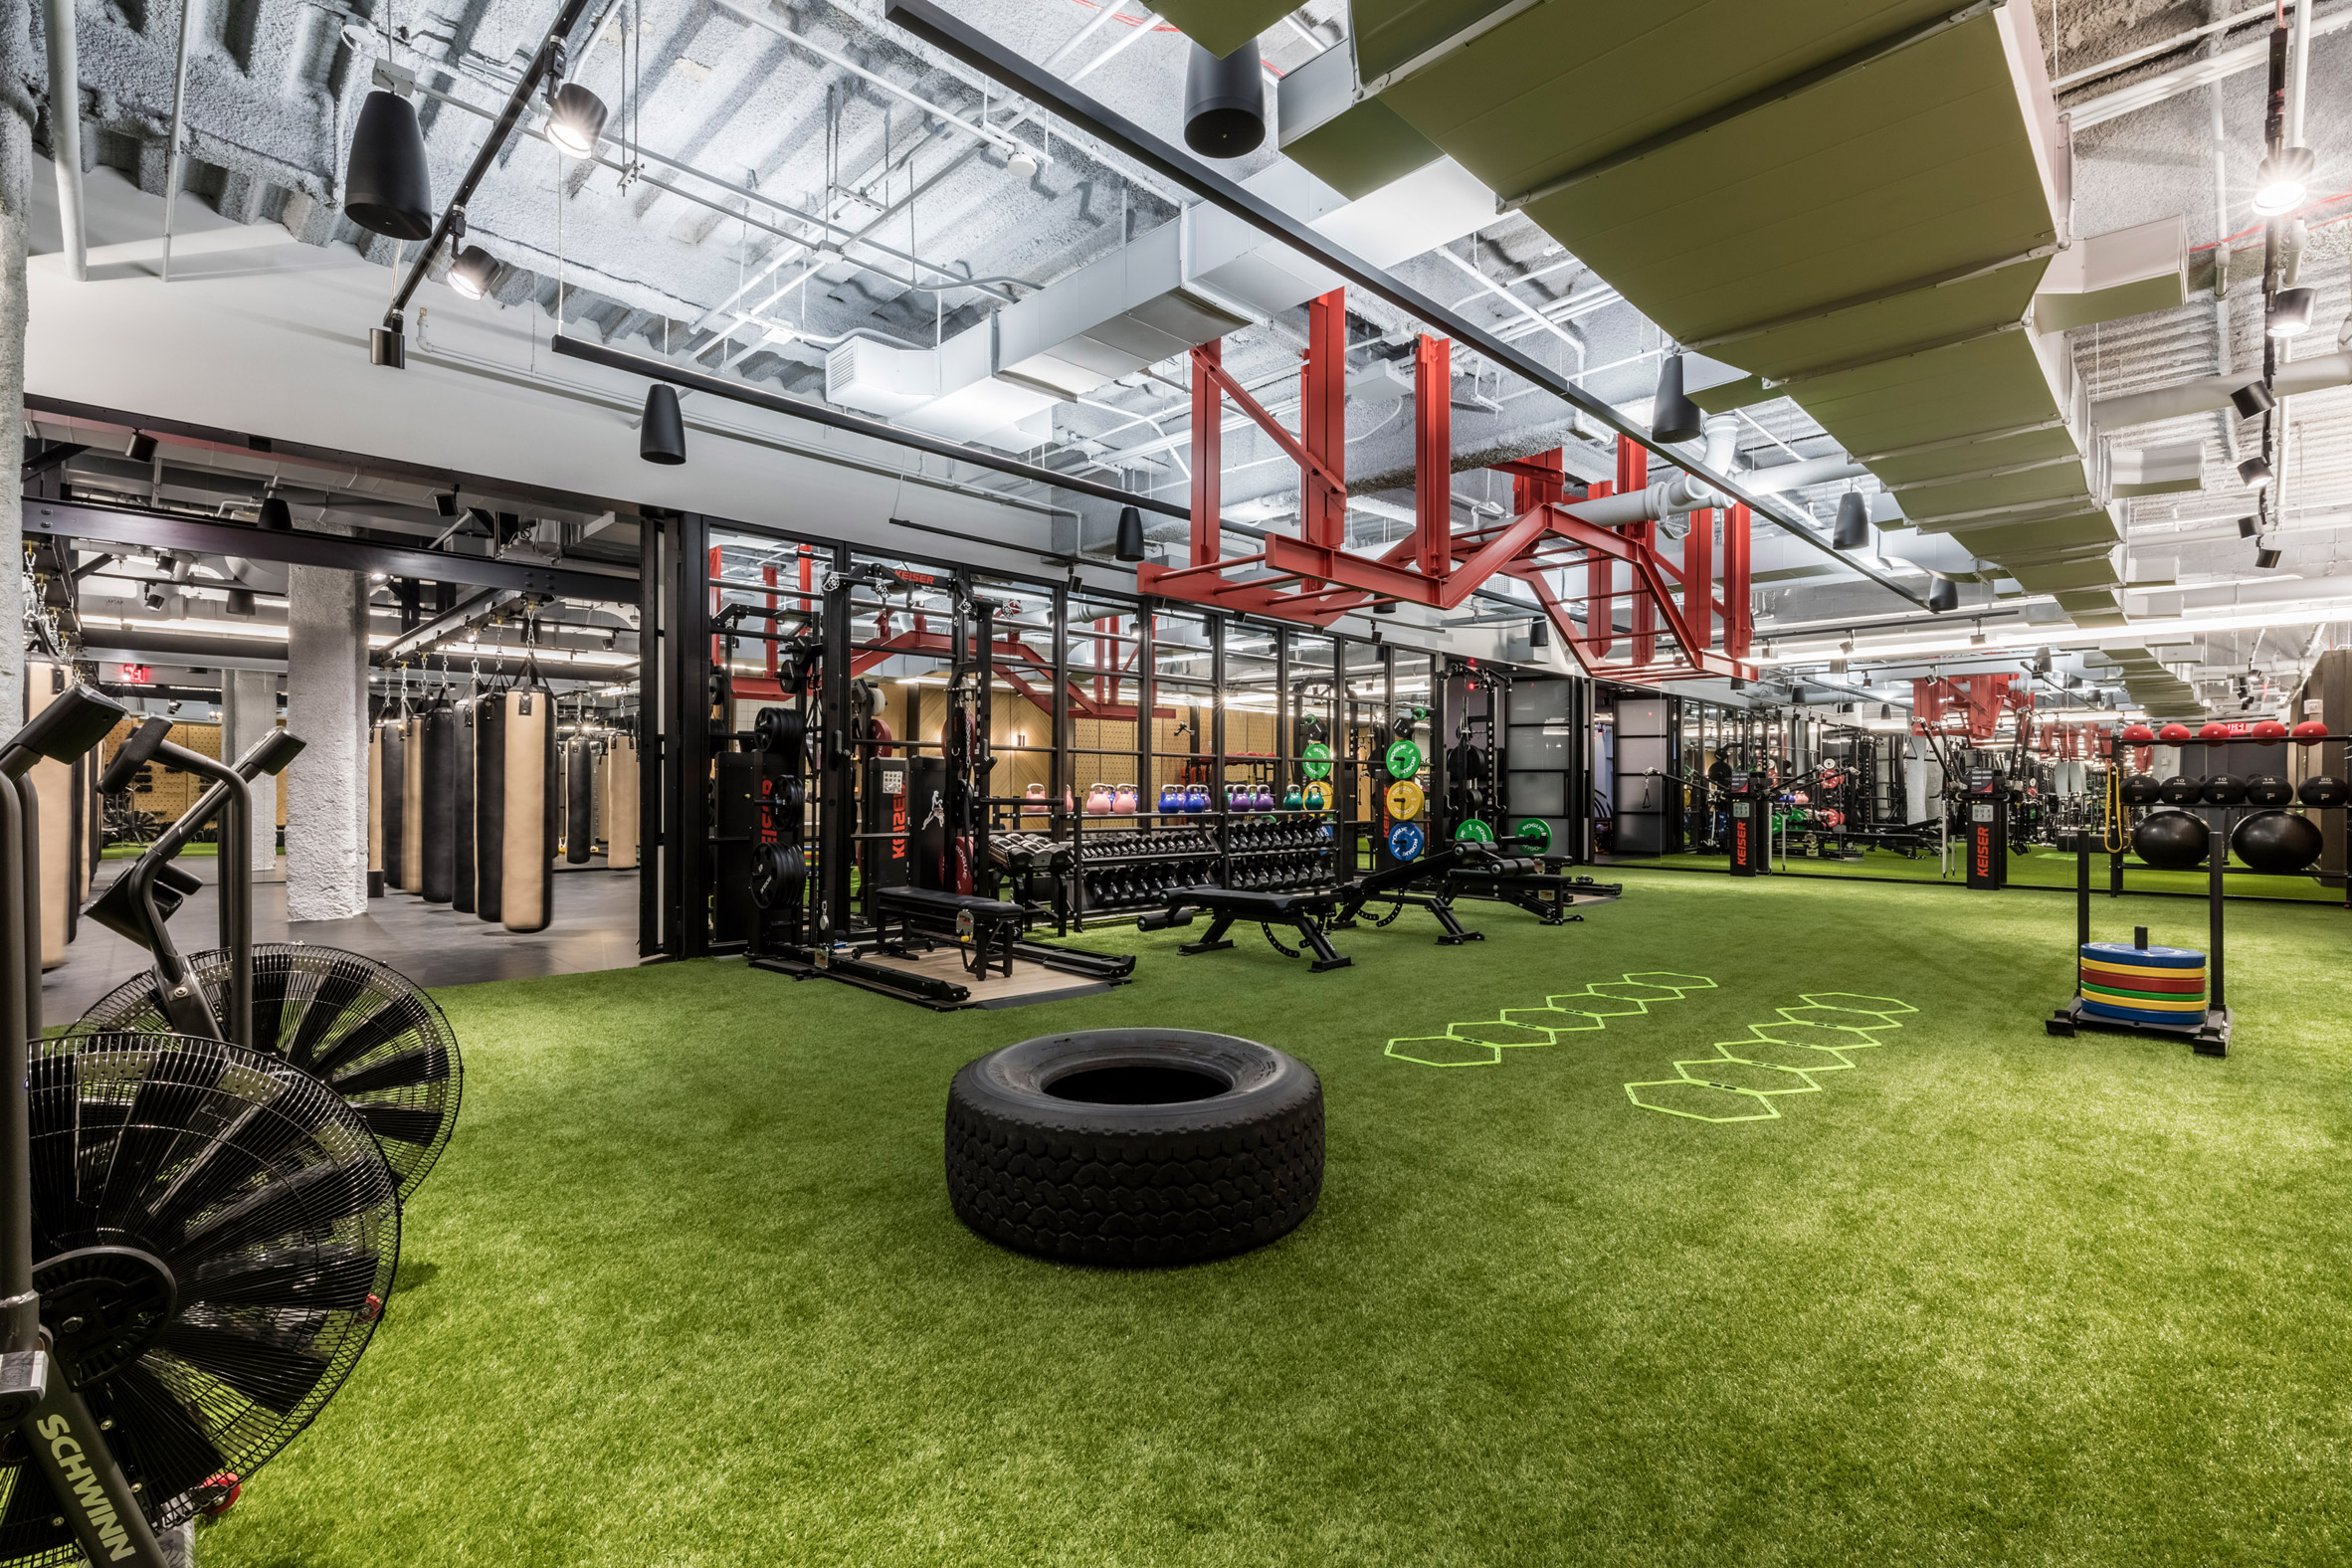 In 2017 WeWork ventured into the world of fitness opening their first gym in New York City, called Rise by We. The gym forms part of the WeWork's progressive outlook on creating spaces that suit contemporary lifestyles.